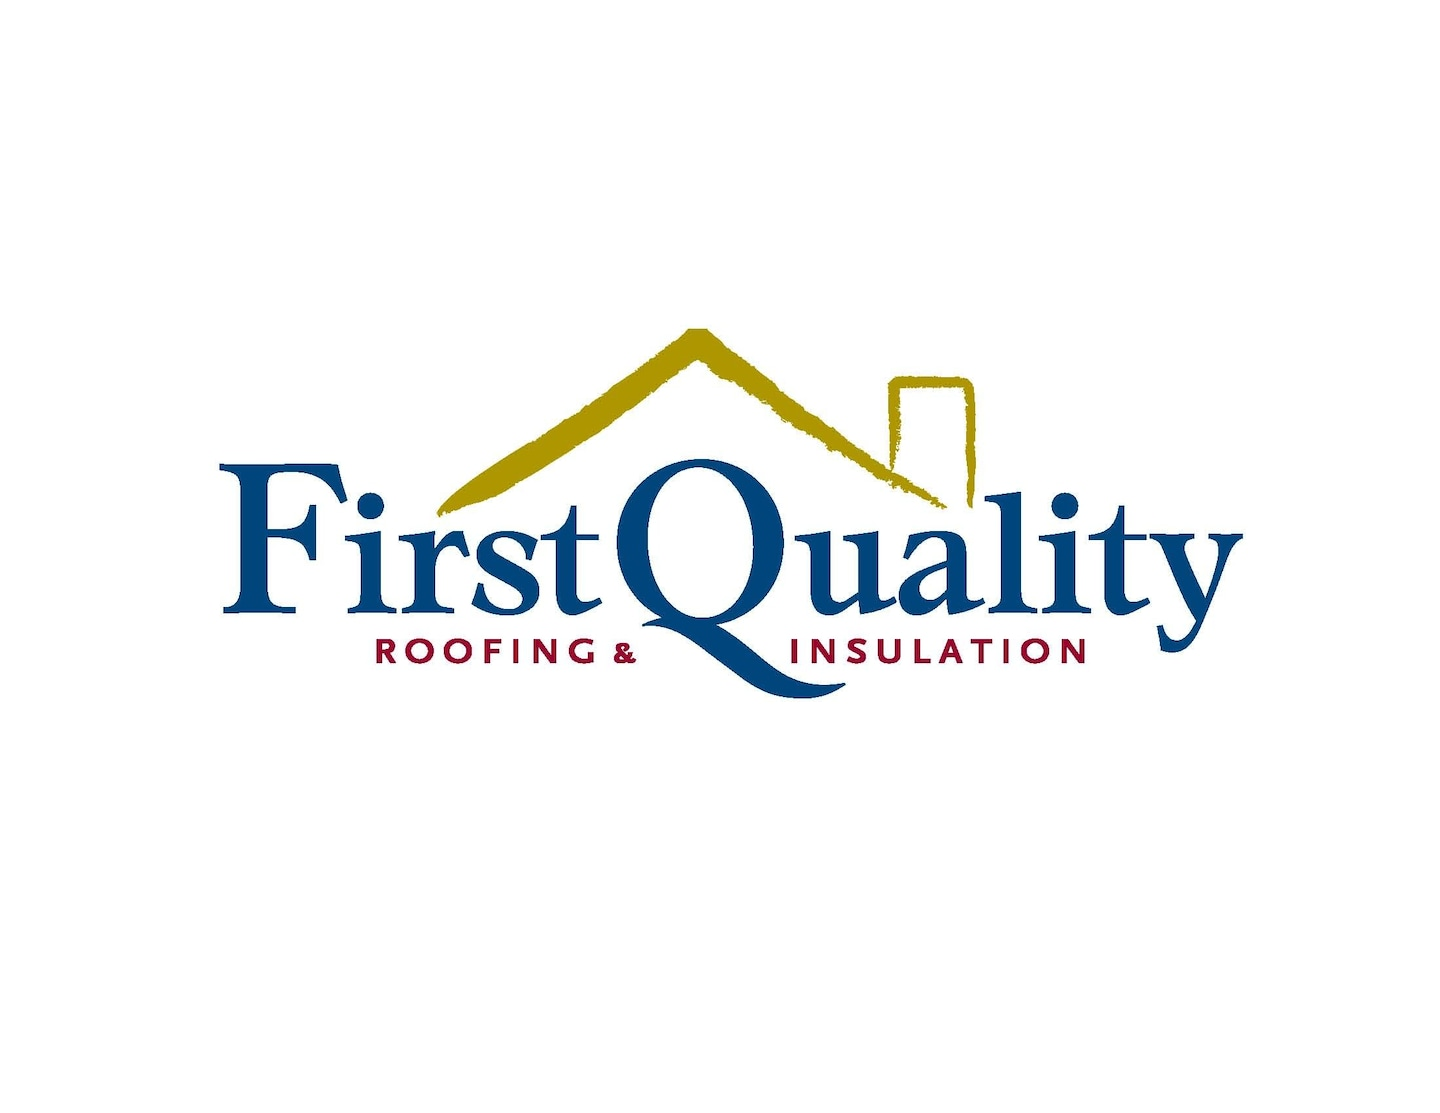 First Quality Roofing & Insulation